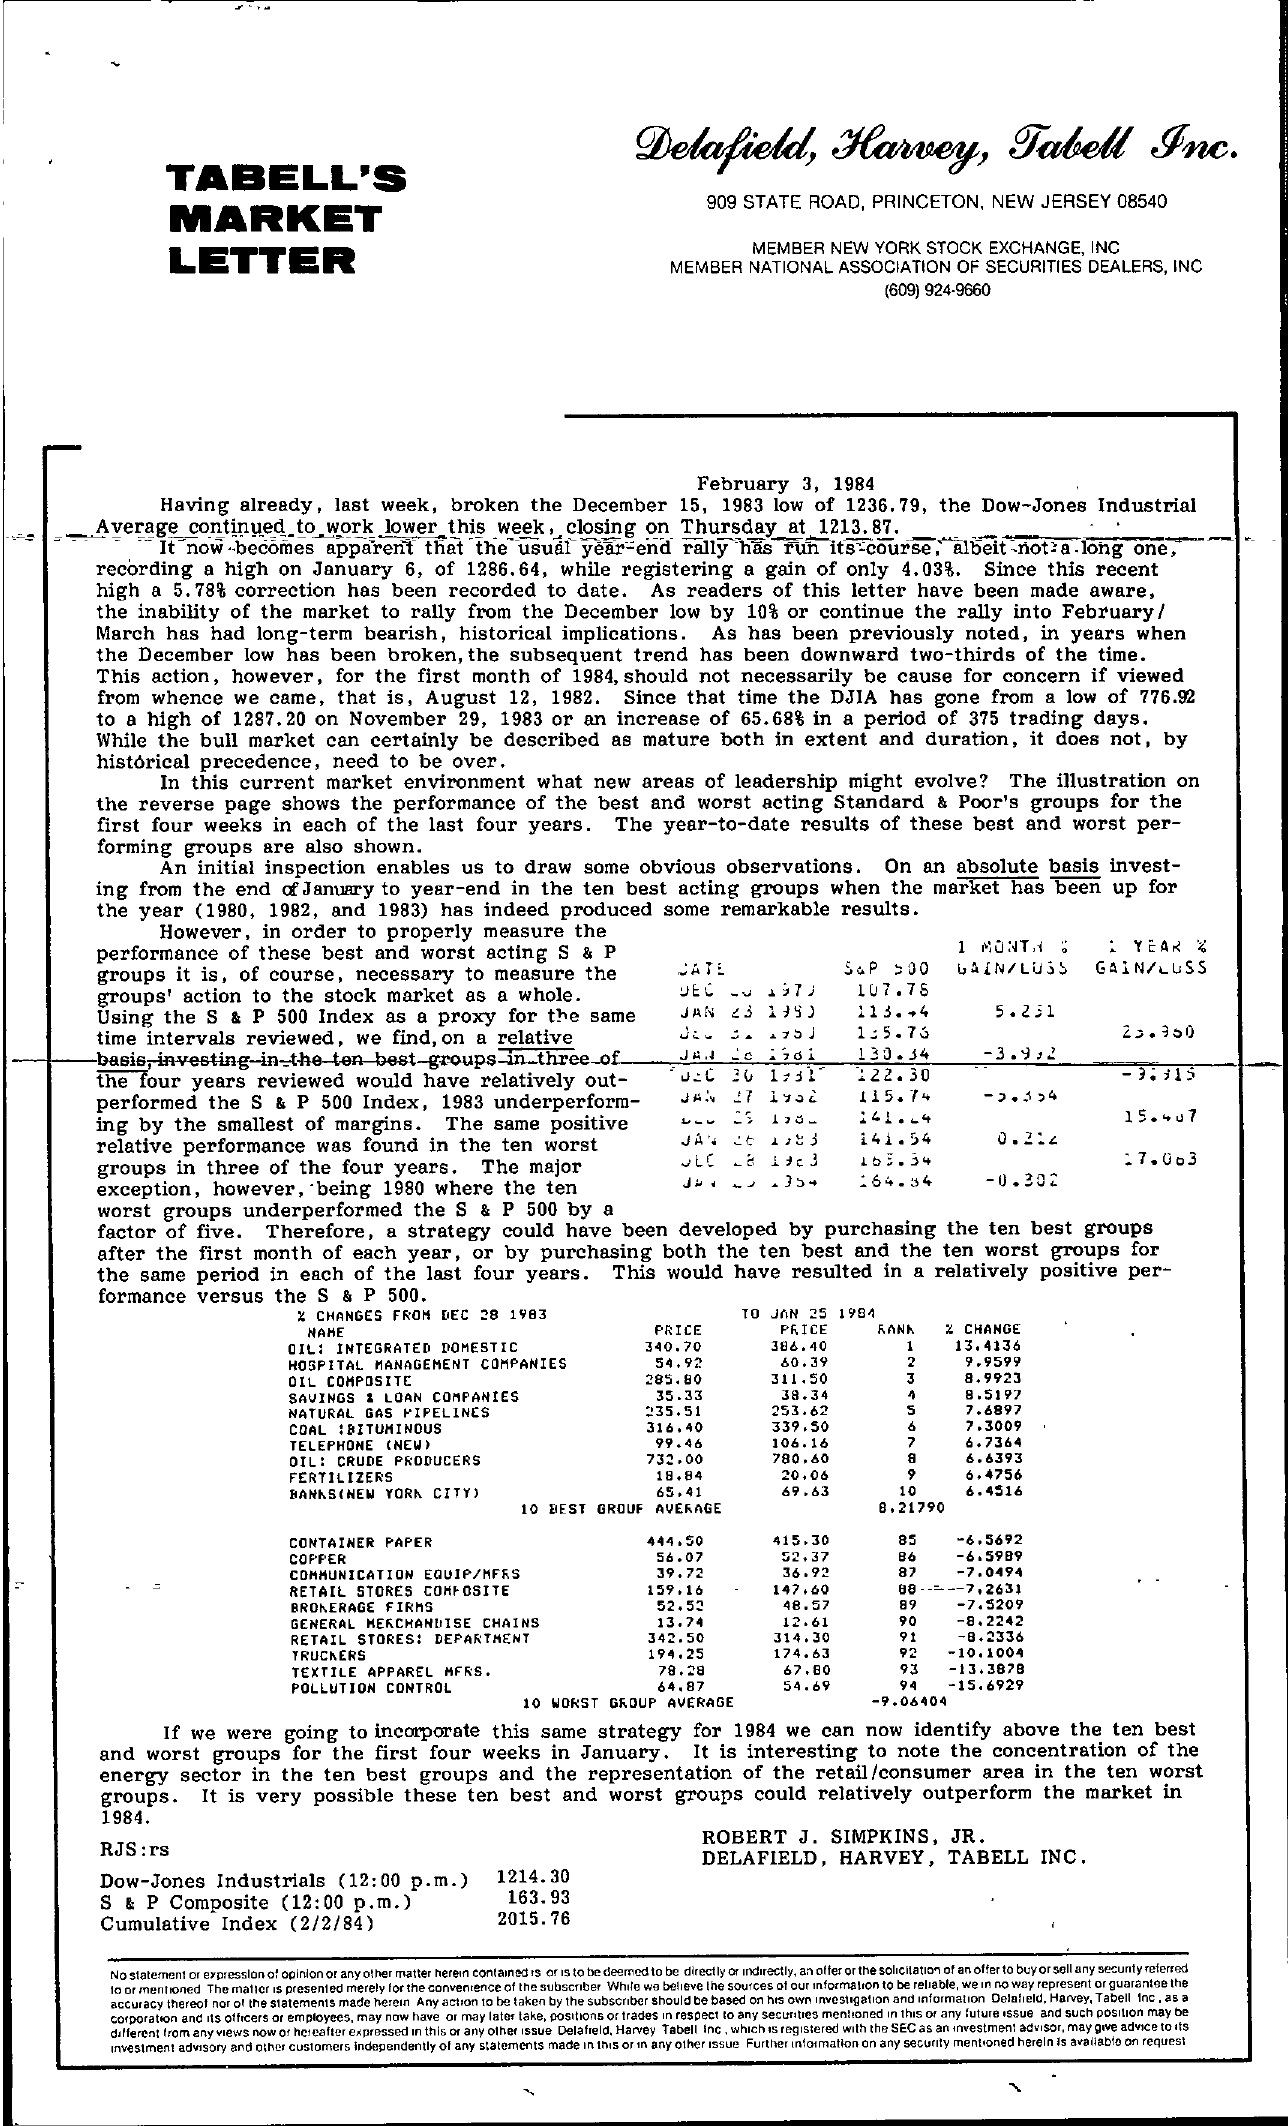 Tabell's Market Letter - February 03, 1984 page 1